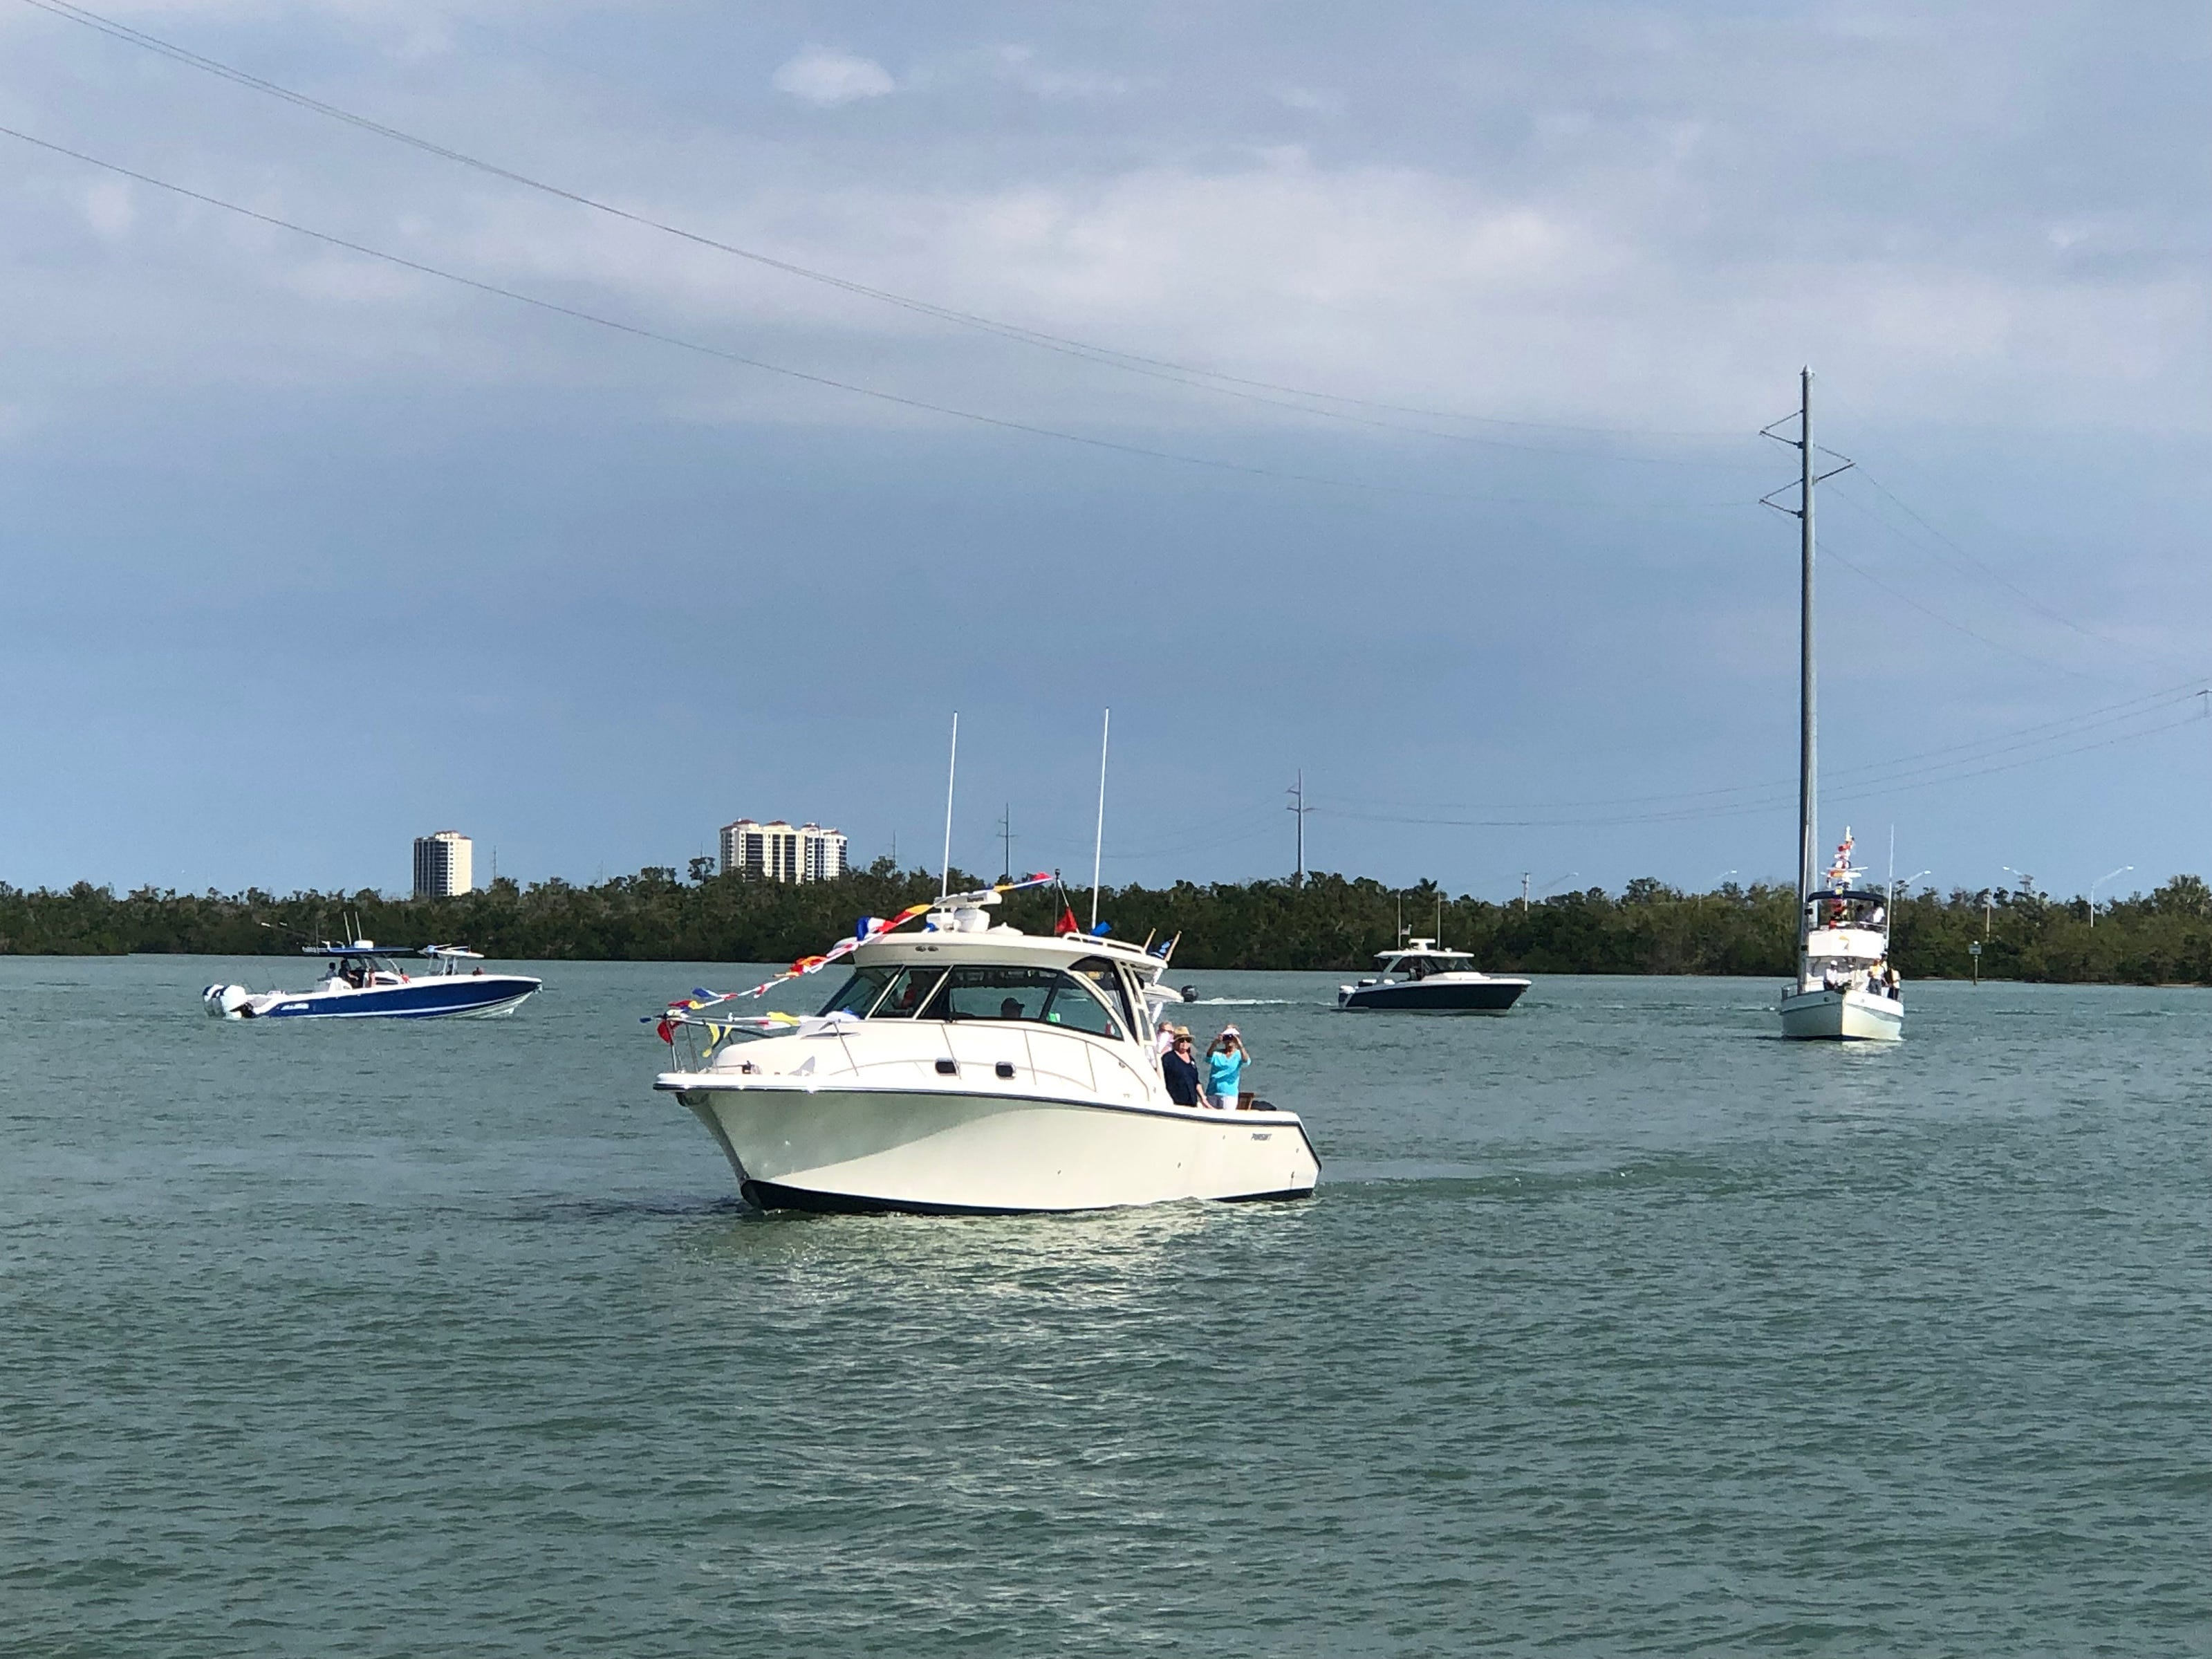 Blue Moon, owned by Jim and Linda Marr, and other fleet participants approach the Marco Island Yacht Club after receiving a maritime Blessing from Yacht Club chaplain Alan Sandlin.